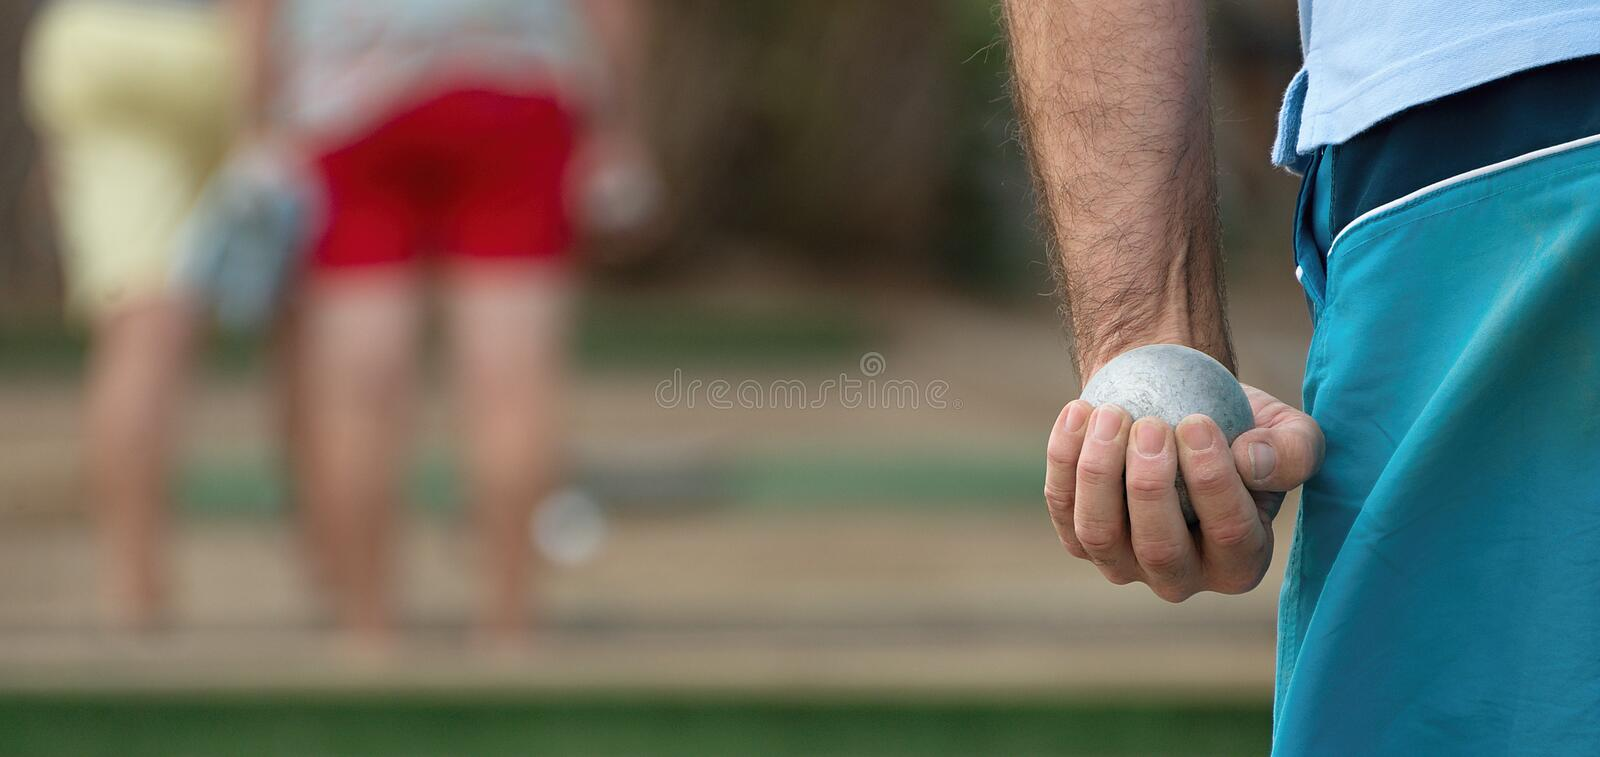 Petanque ball in hand of man. Senior playing petanque,fun and relaxing game.Petanque ball in hand of man royalty free stock photo